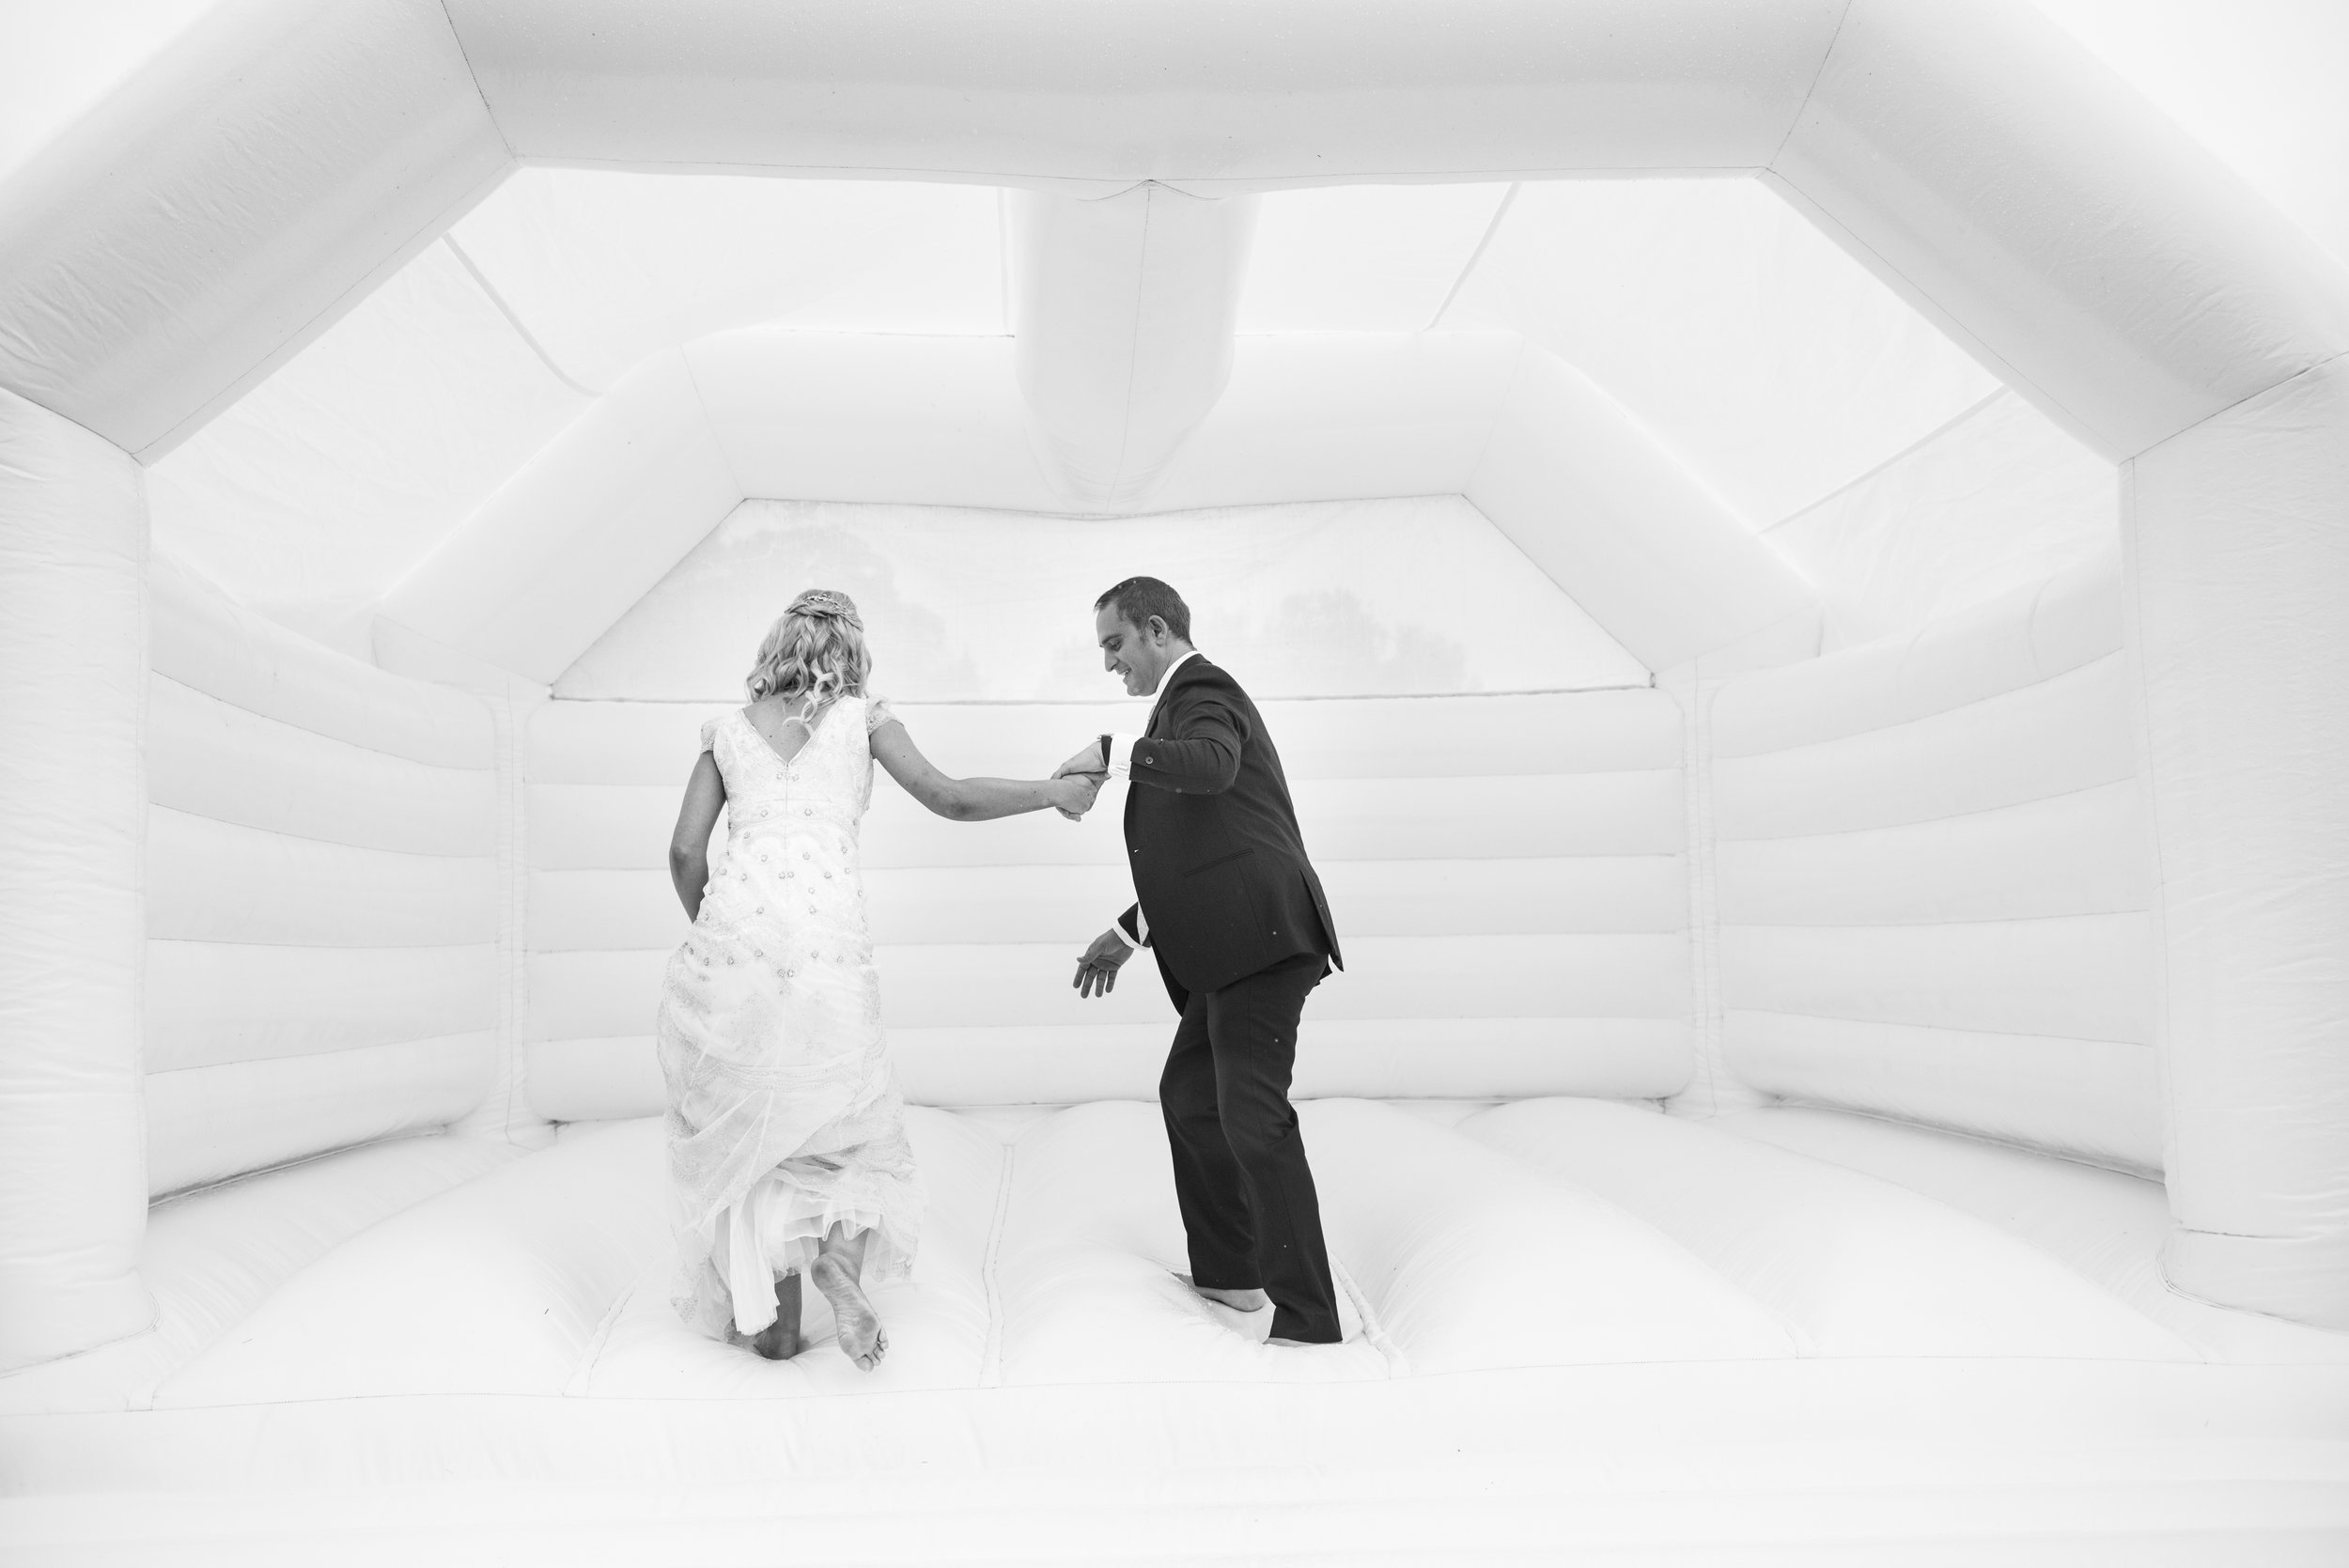 Sarah Wenban Wedding Photography - Frequently Asked Questions